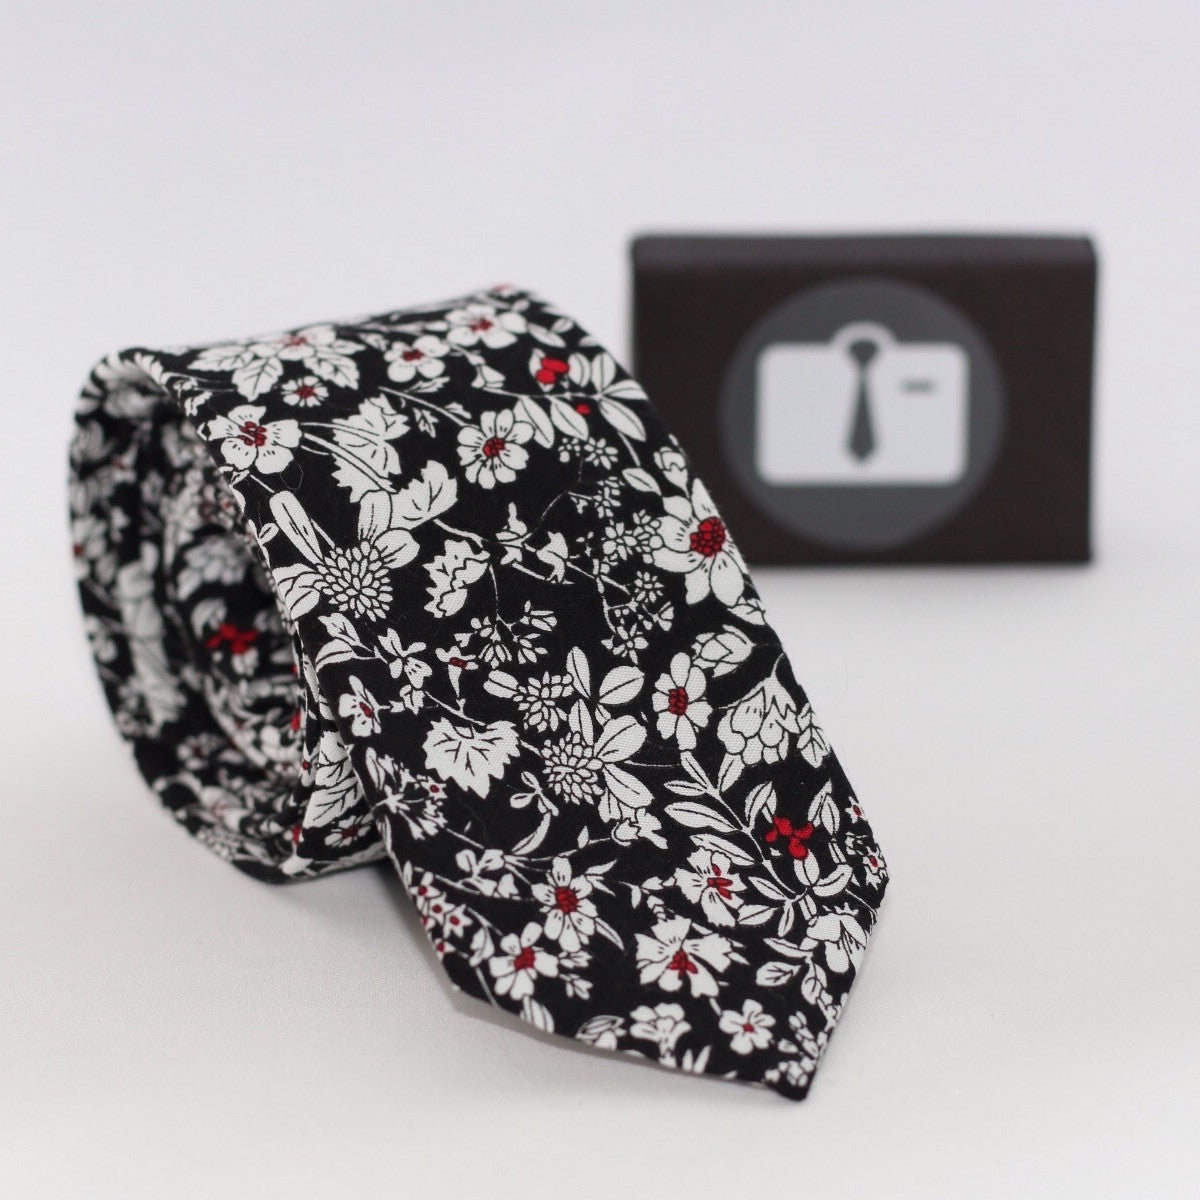 Black Floral Tie With White Botanical Design